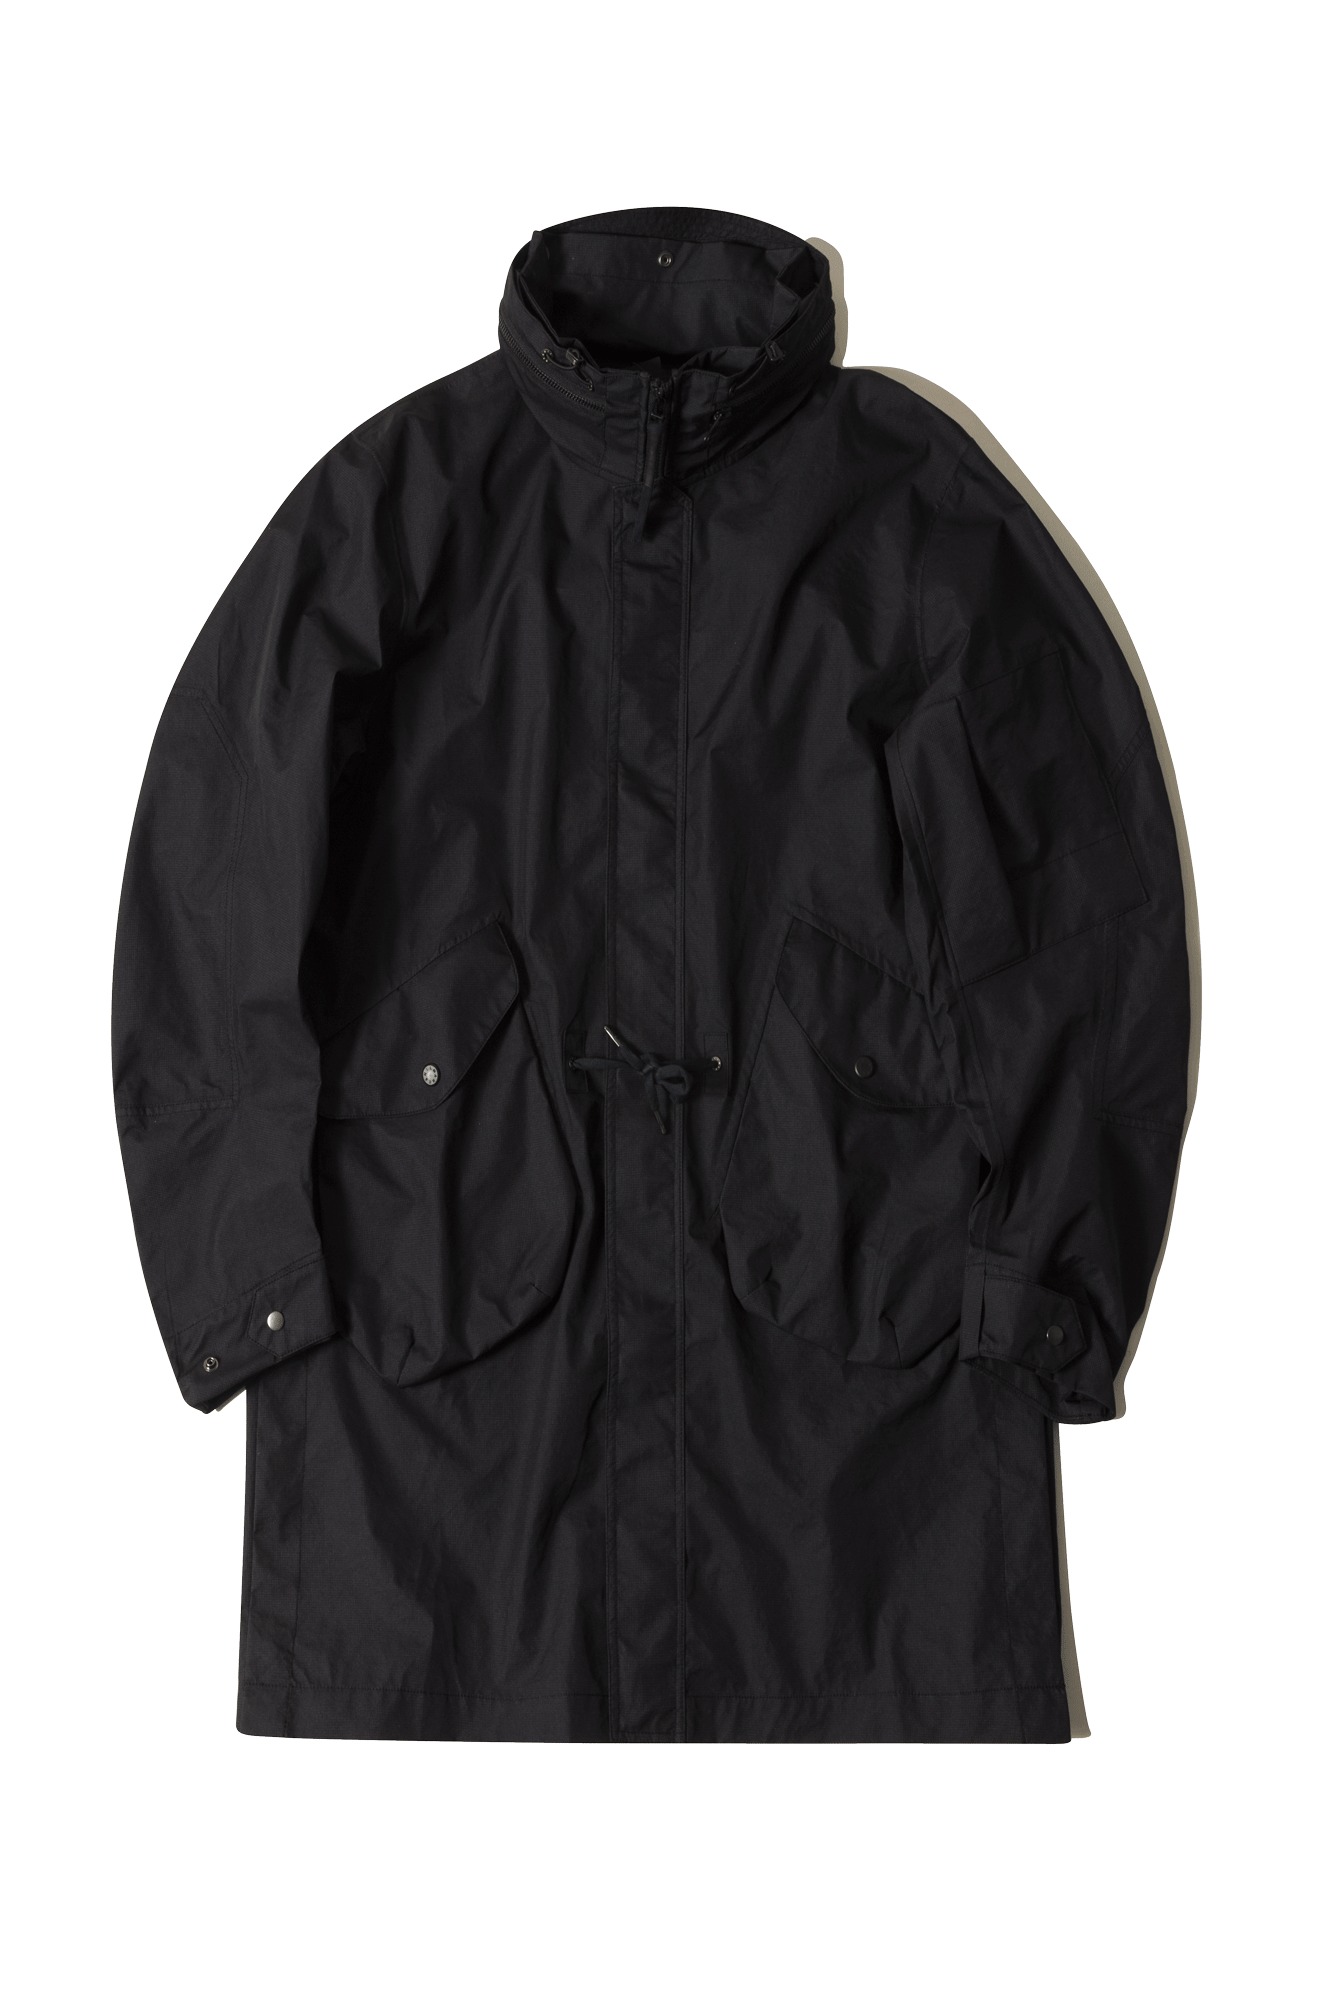 Coats & Jackets Nilmance 3L Ripstop Taped Parka Black - One Block Down